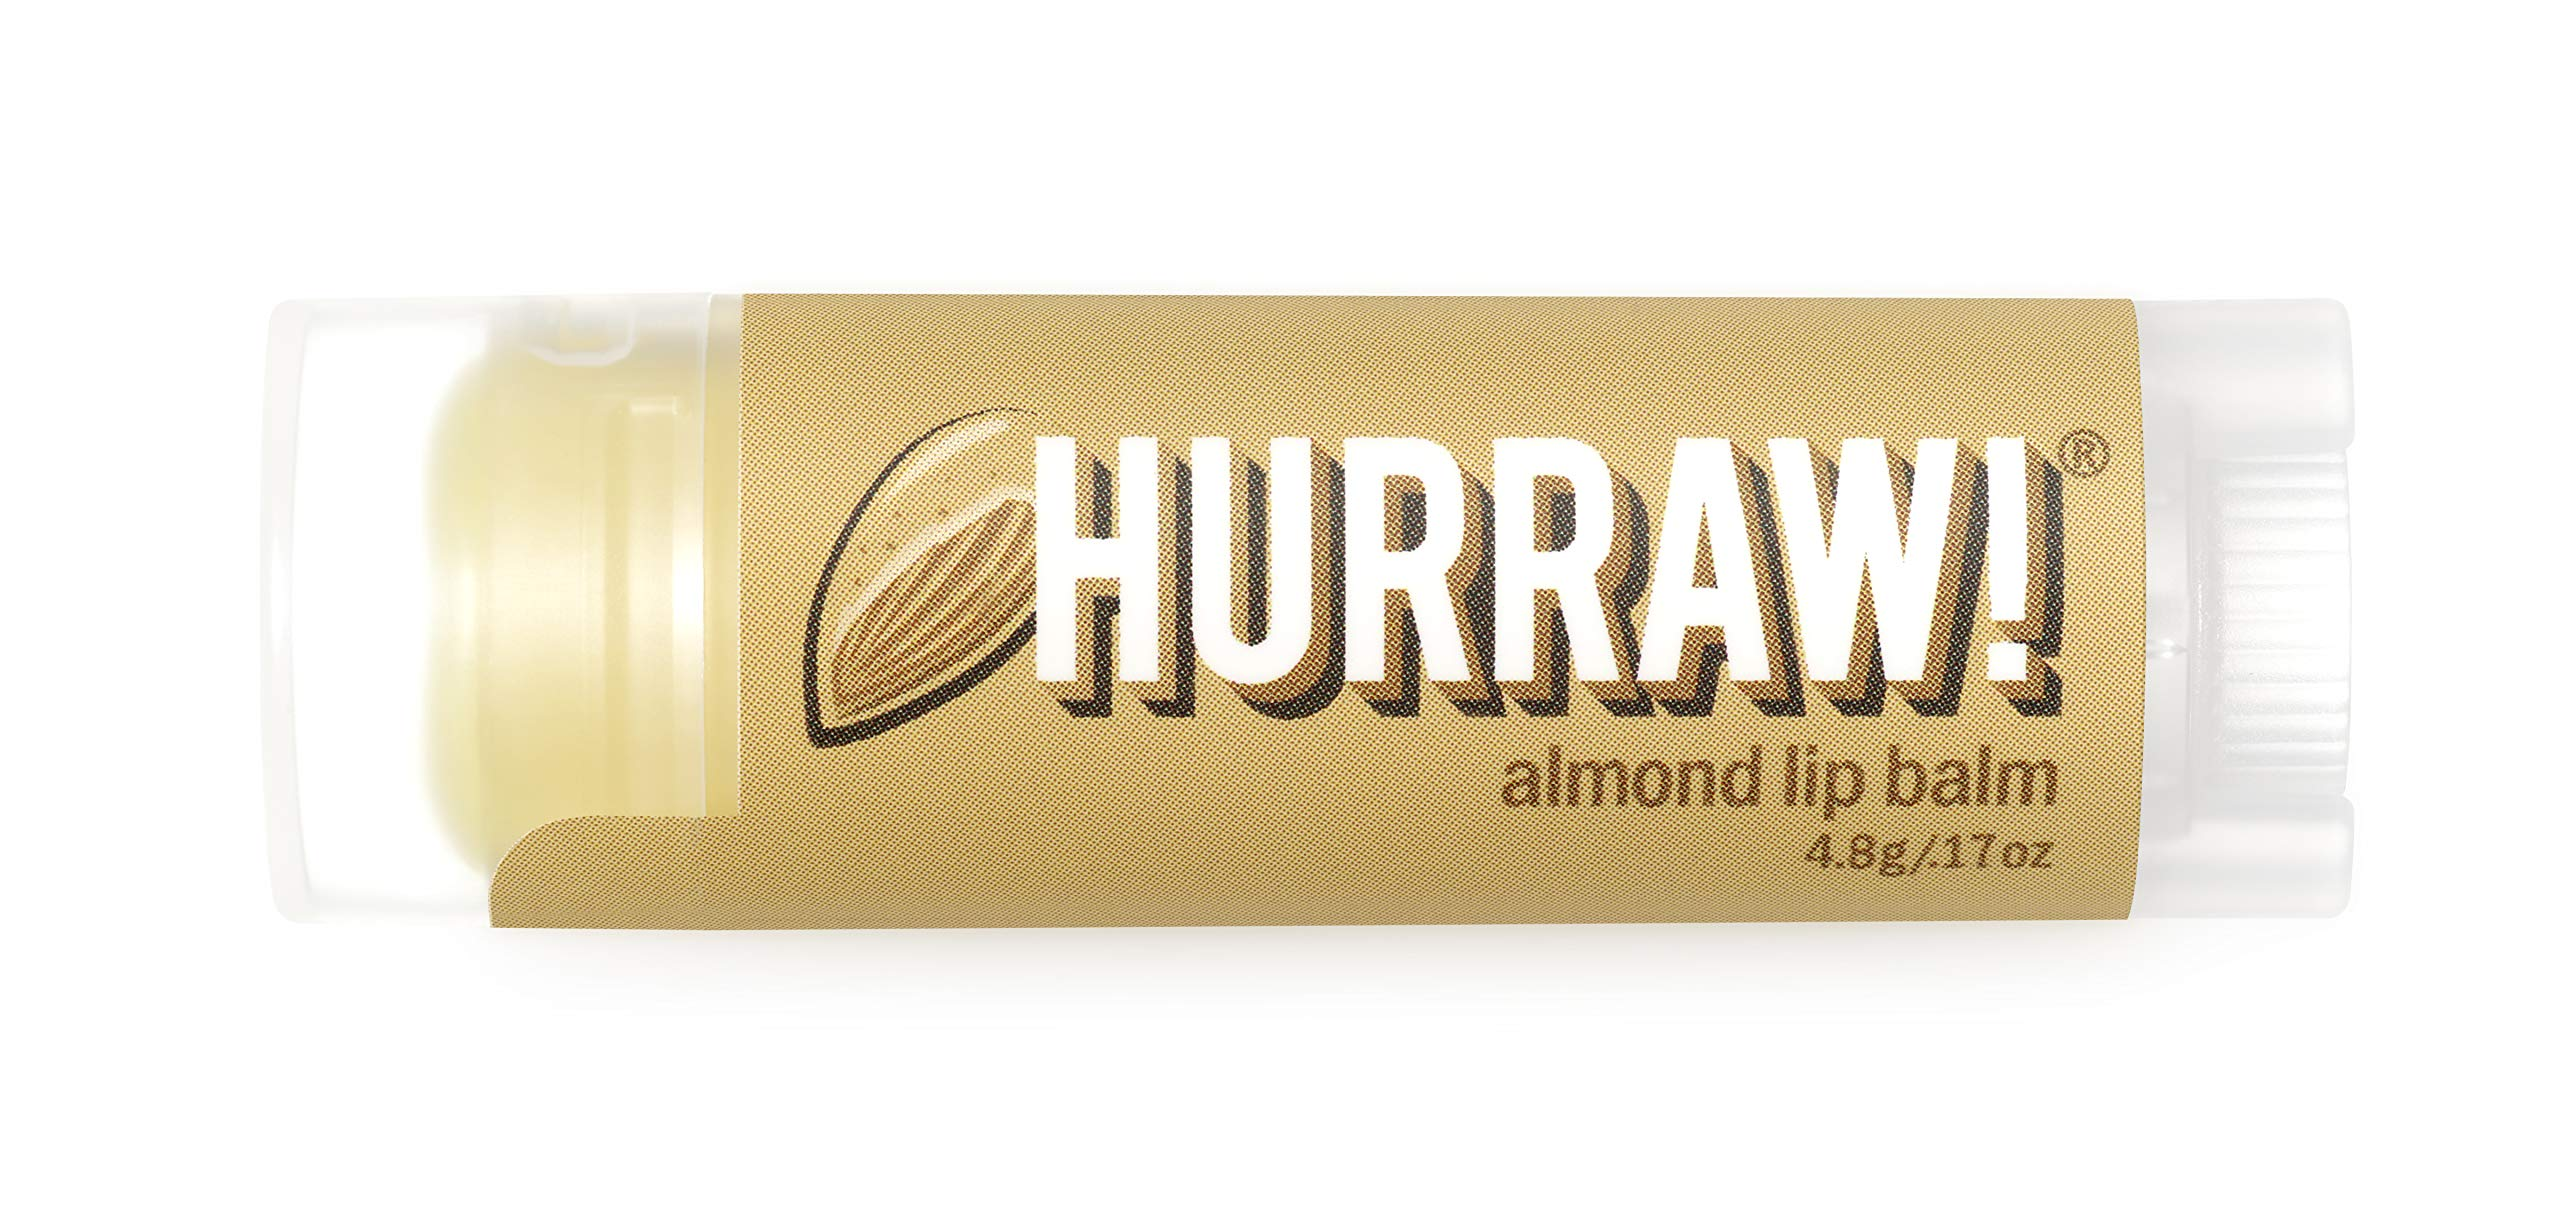 Hurraw Almond Lip Balm, 4.8g/.17oz – Organic, Certified Vegan, Cruelty and Gluten Free. Non-GMO, 100% Natural Ingredients. Bee, Shea, Soy and Palm Free. Made in USA